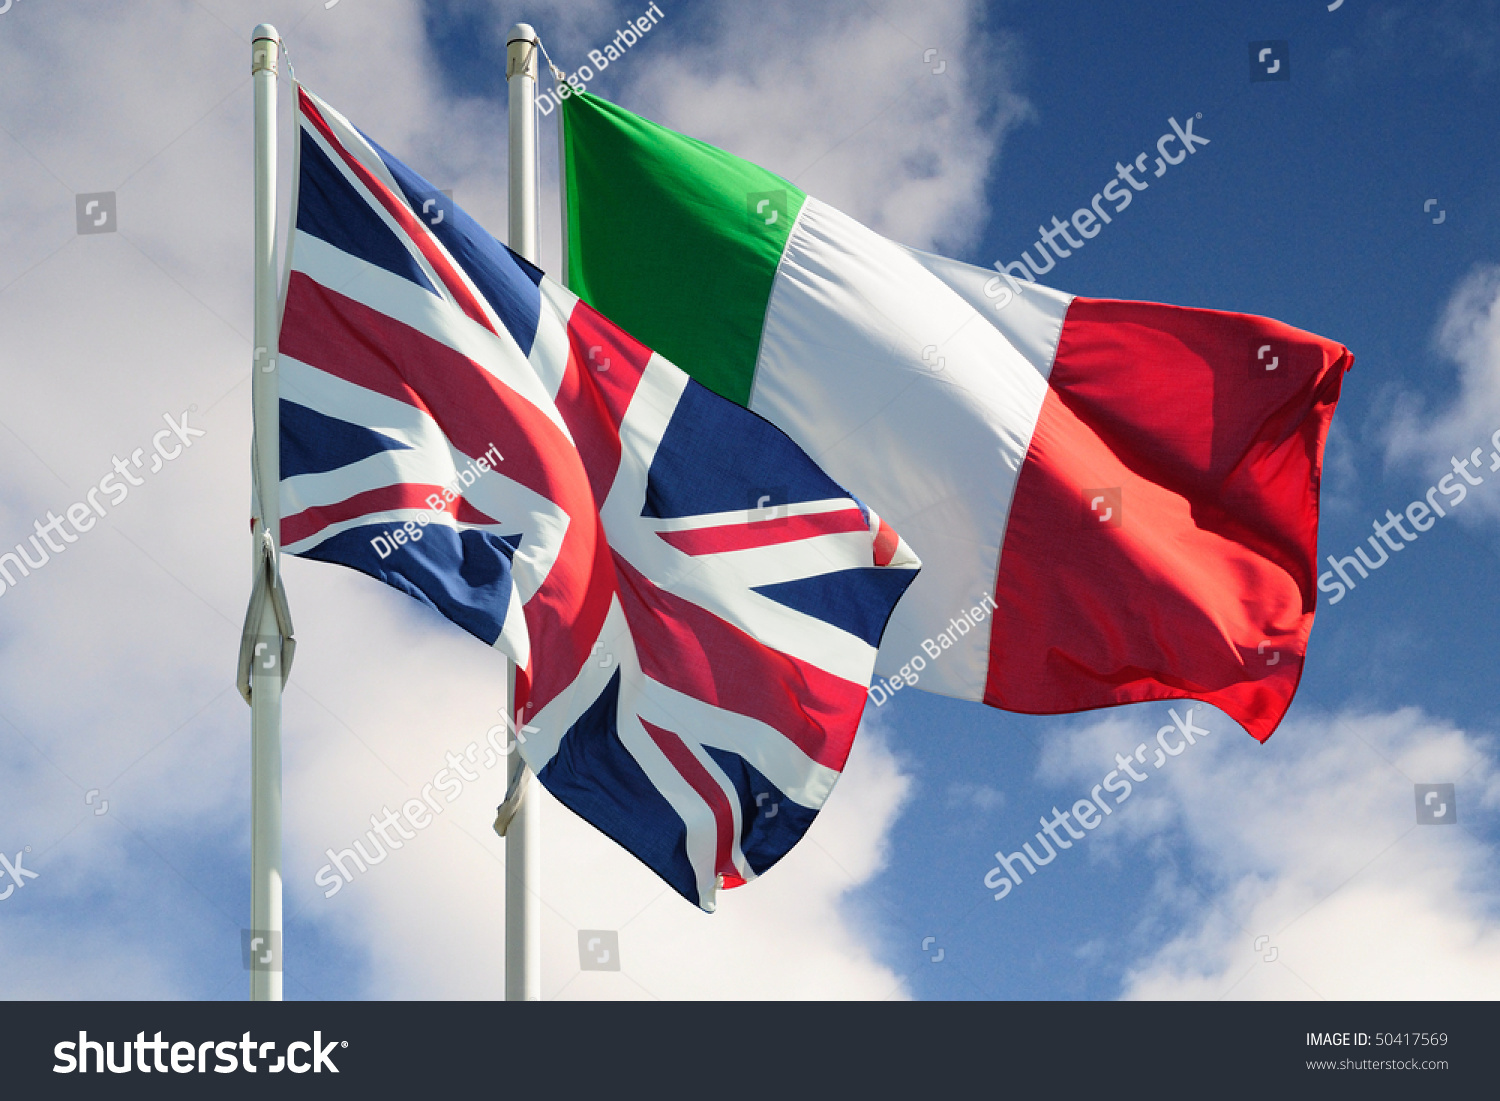 italian british flags on cloudy background stock photo 50417569